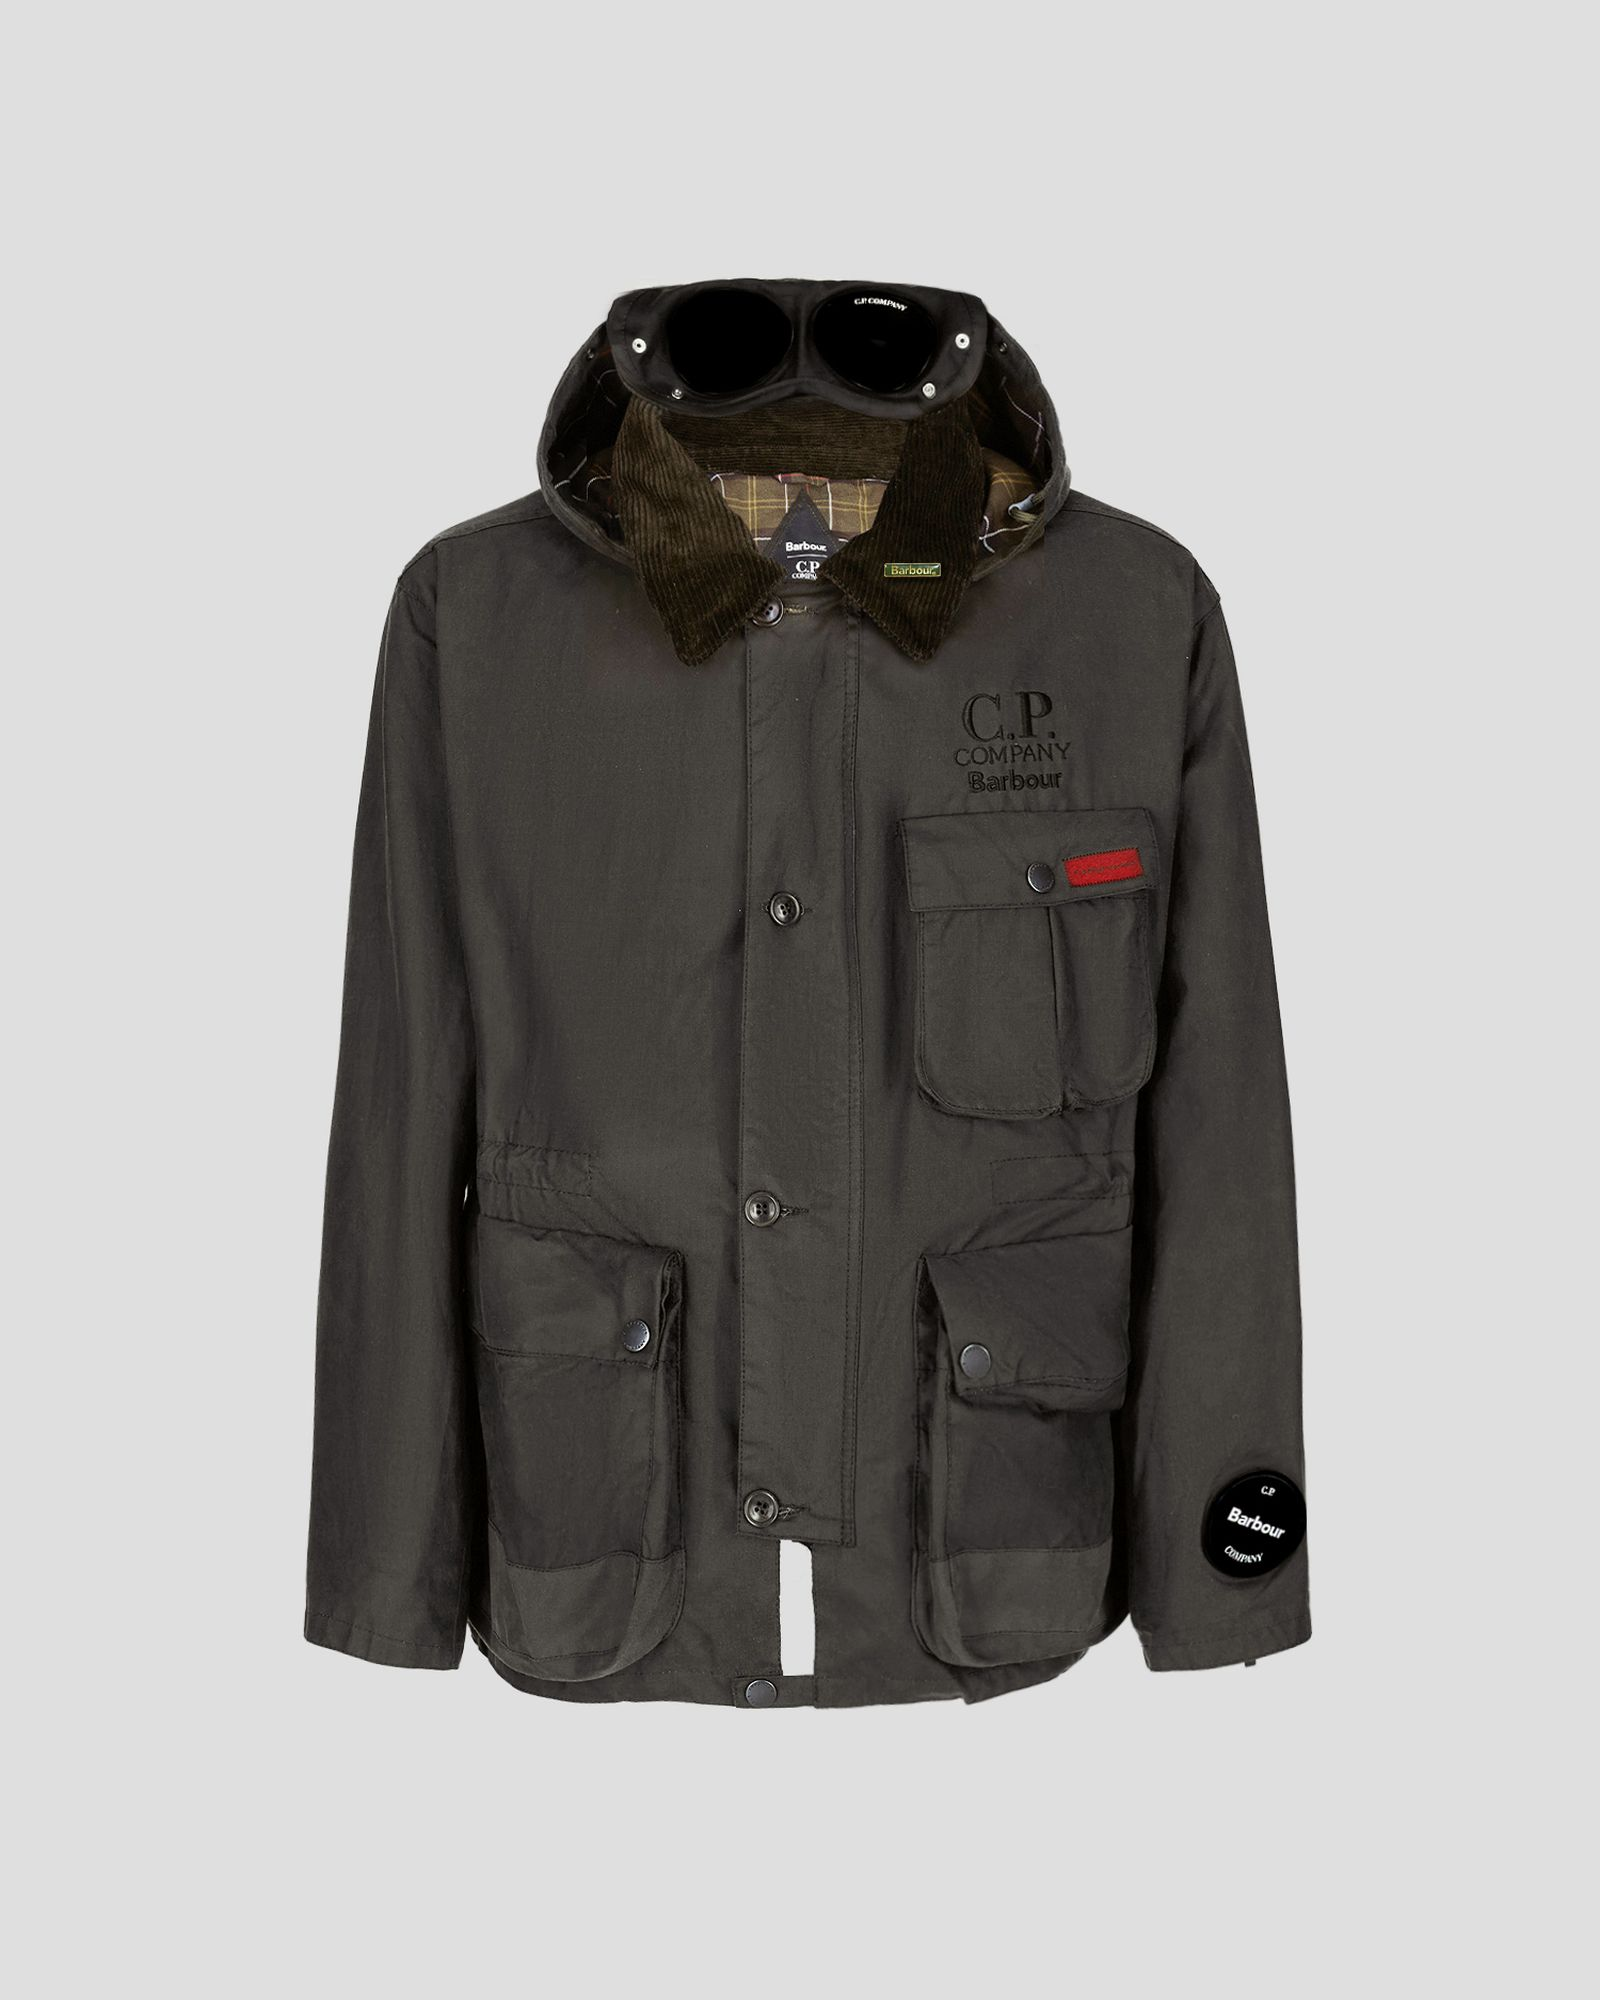 barbour-c-p-company-collection-release-information-12